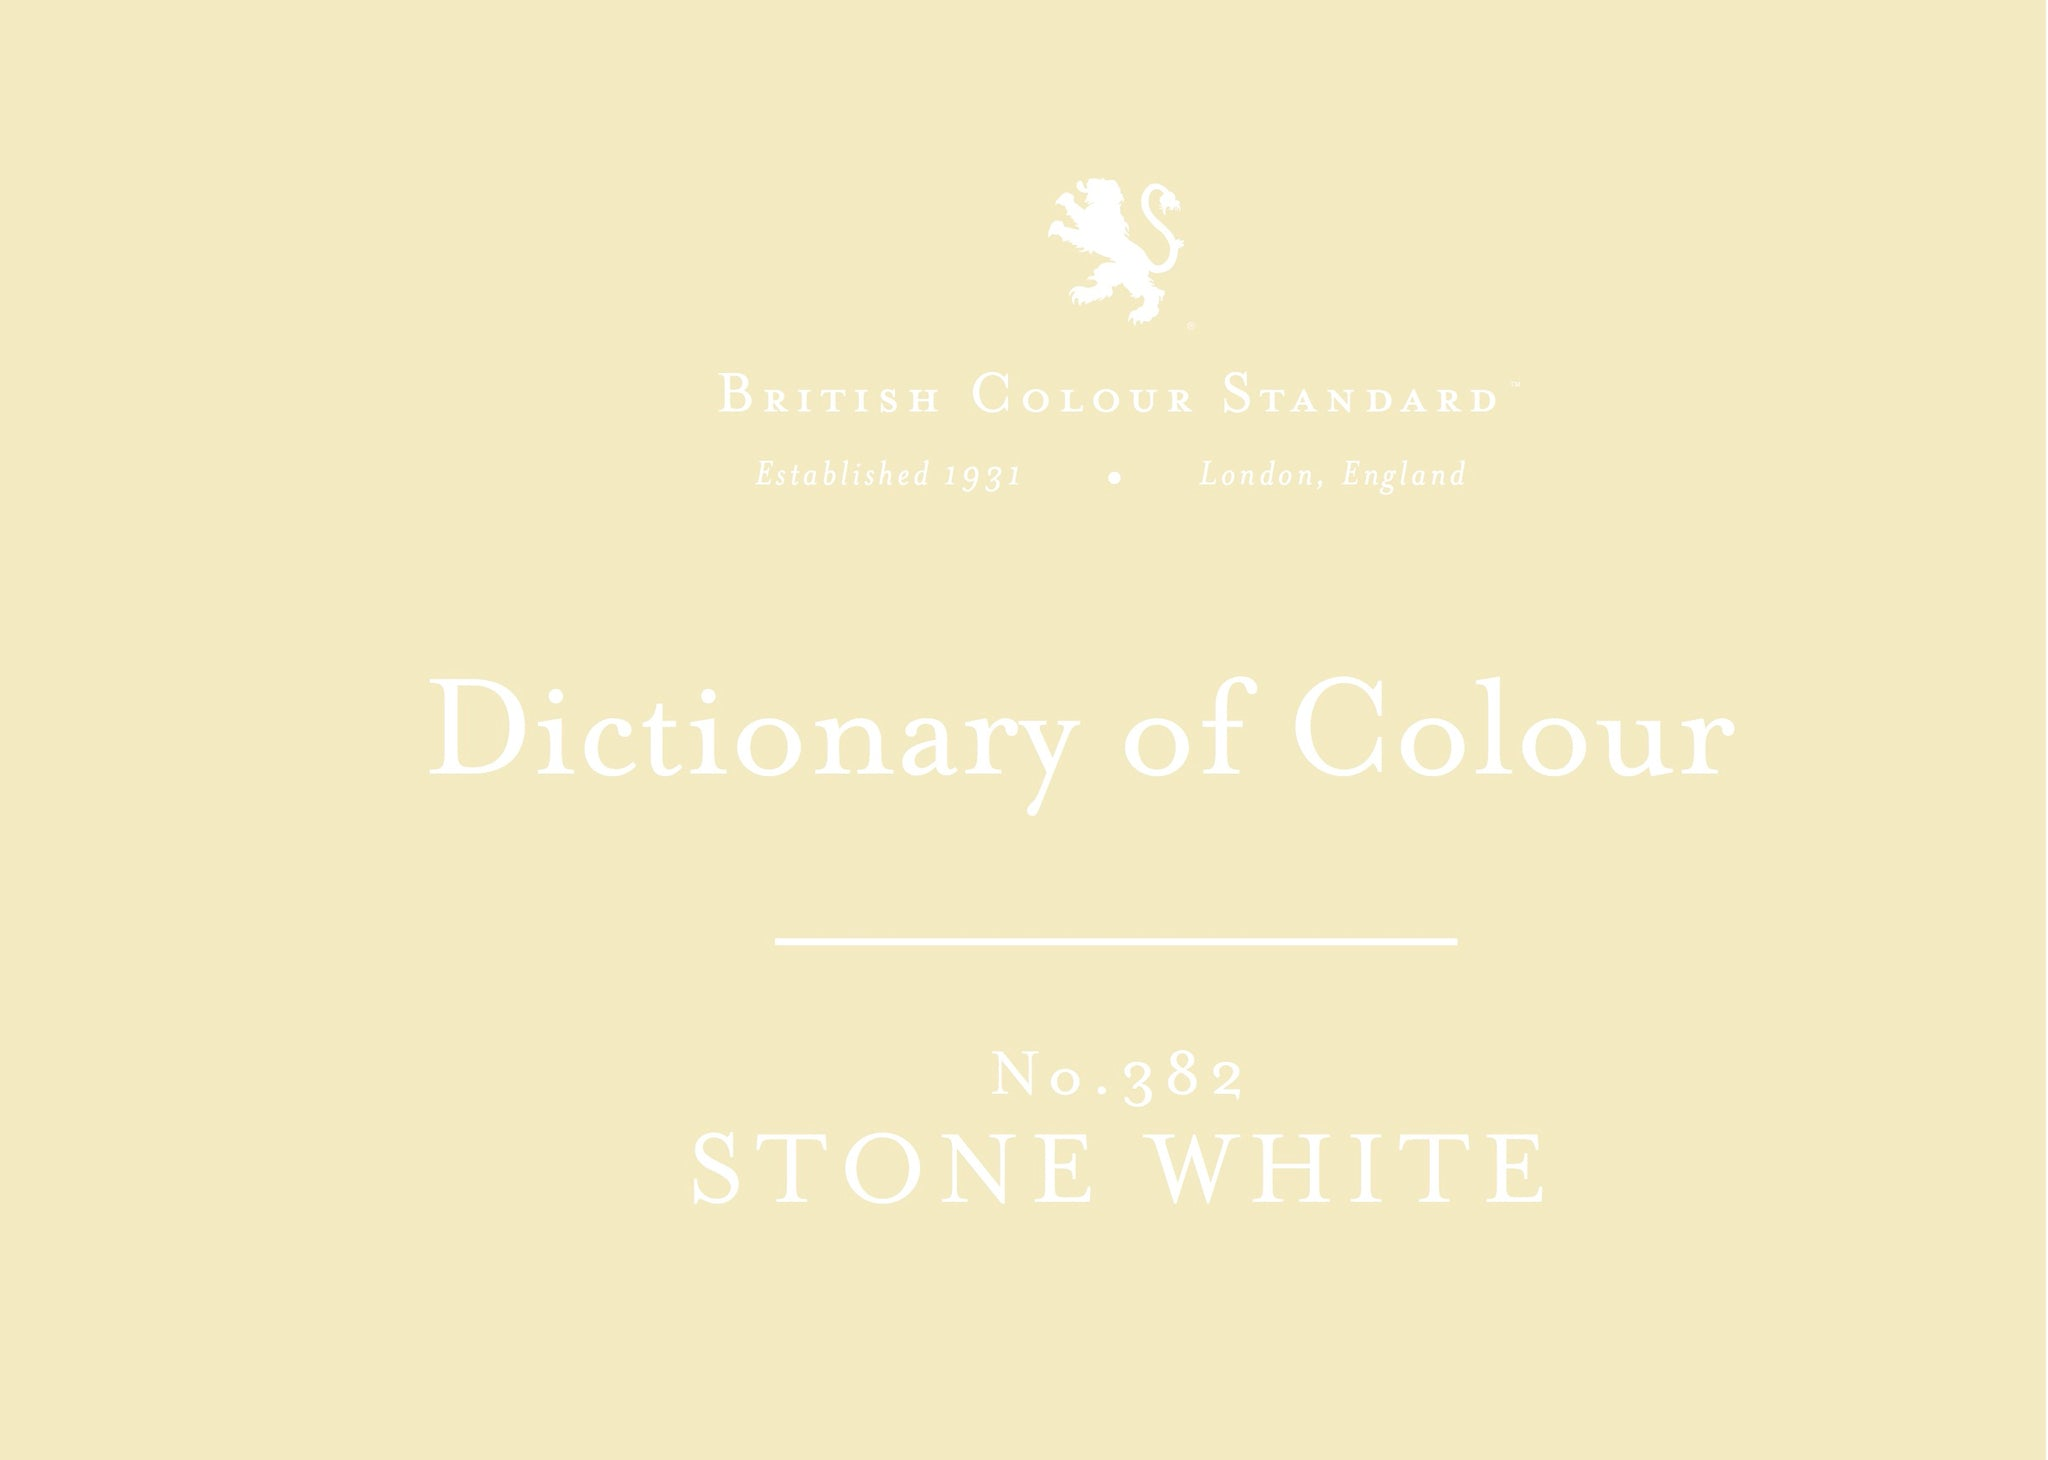 BRITISH COLOUR STANDARD - Stone White No. 382